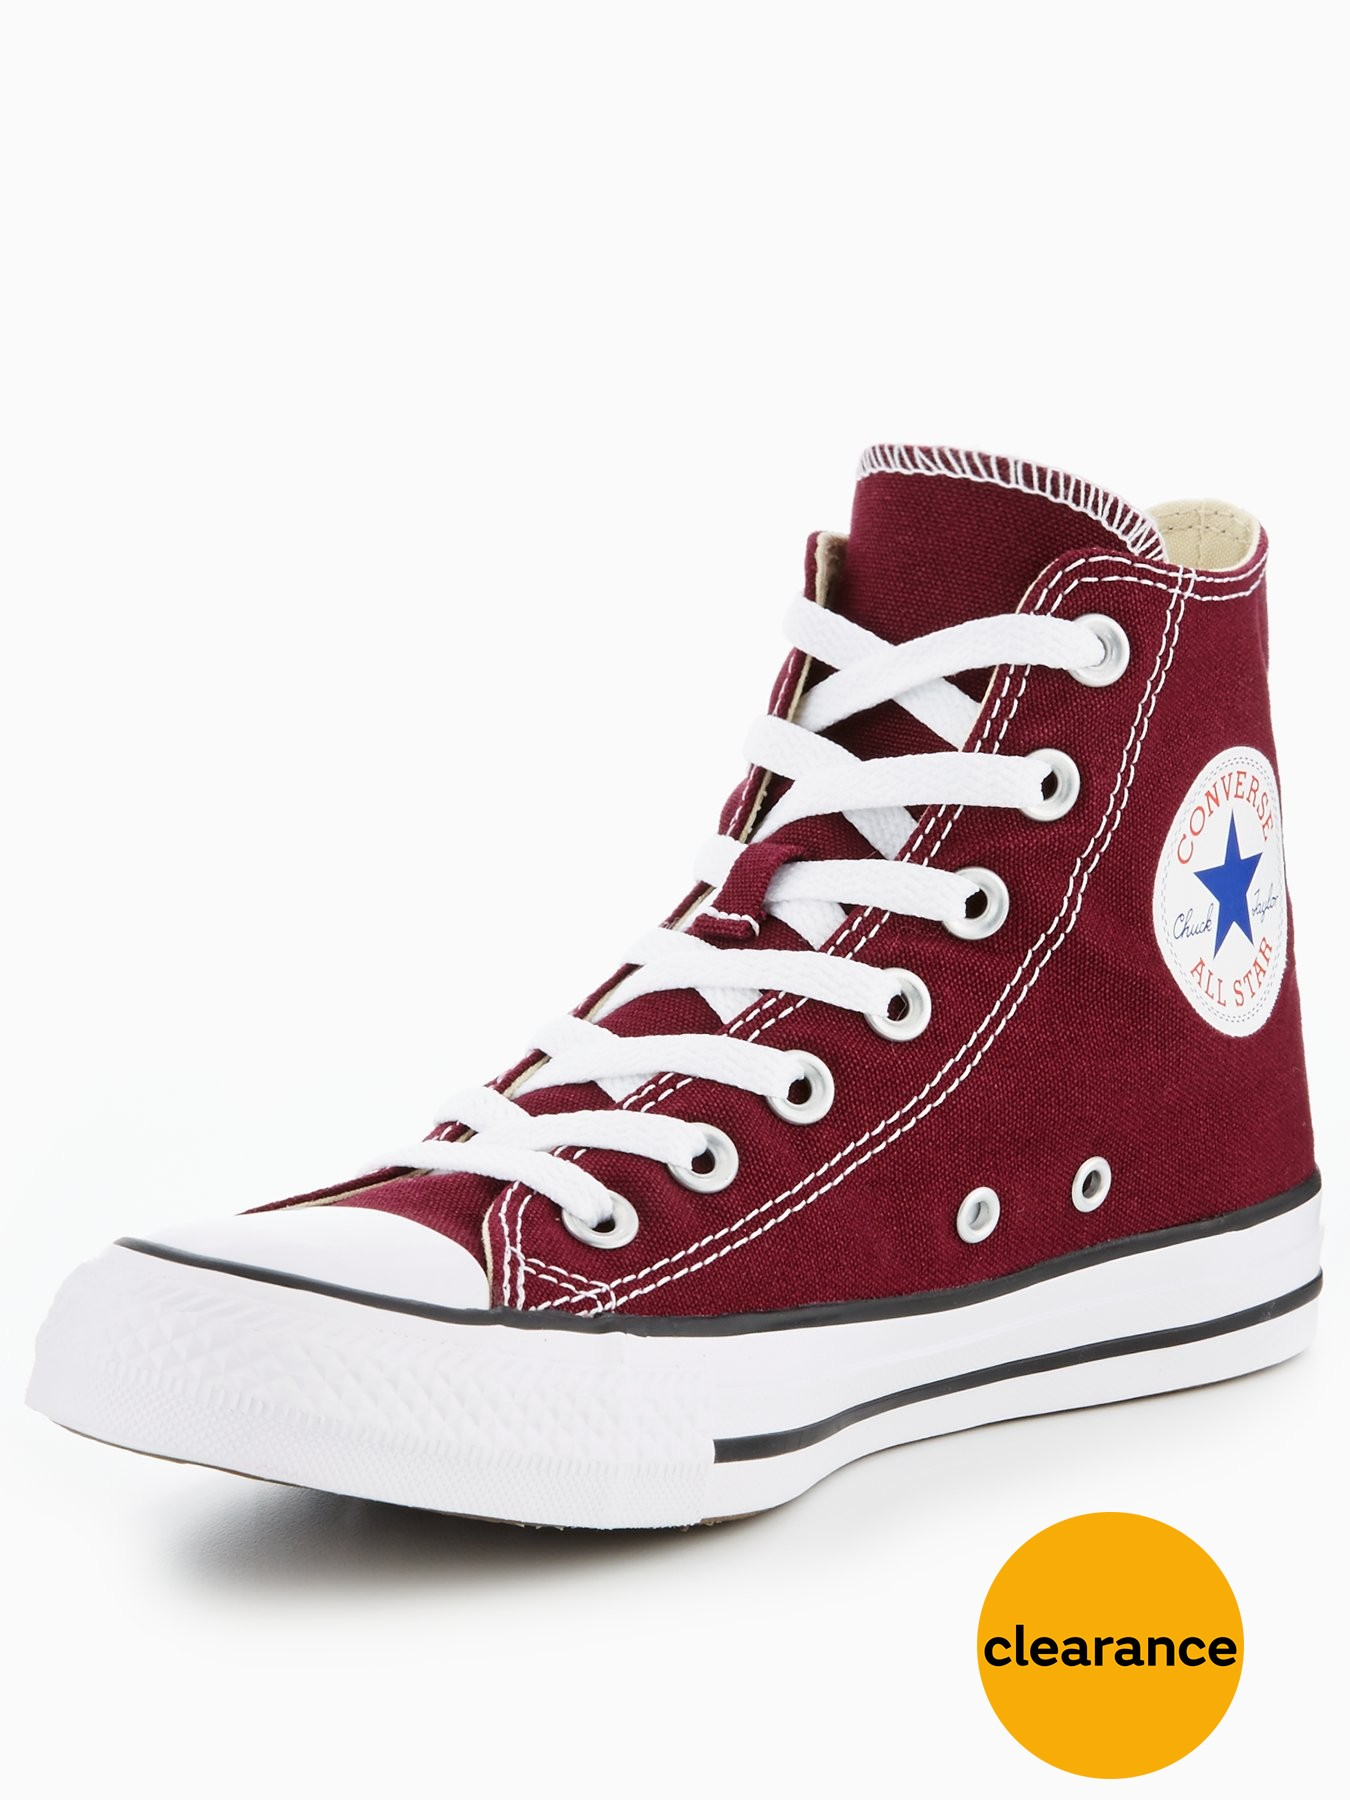 Converse Chuck Taylor All Star Hi Tops Burgundy 1600162057 Women's Shoes Converse Trainers